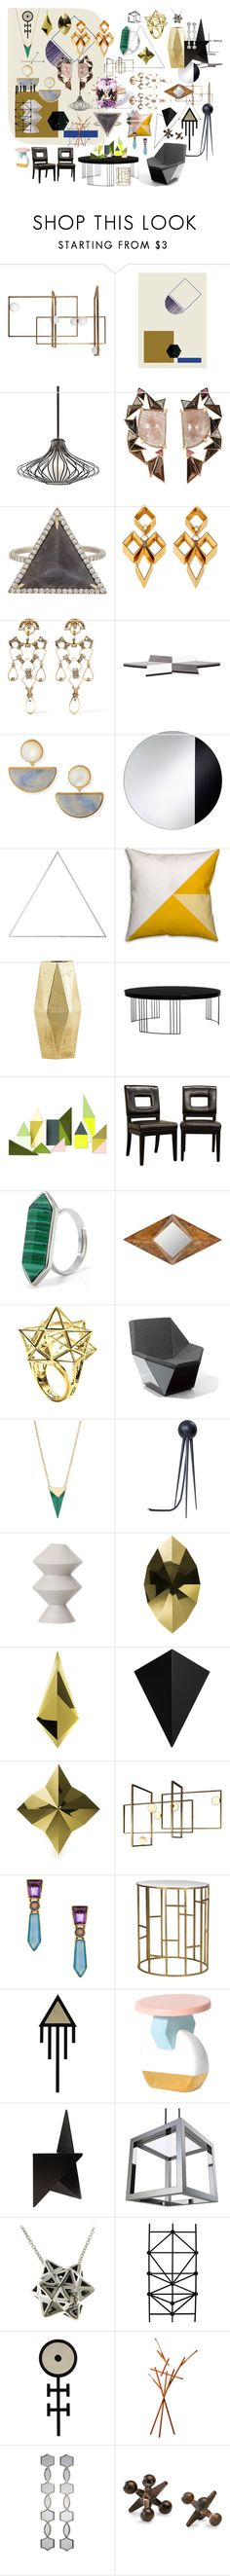 """""""Geometry"""" by sarahhughes-net ❤ liked on Polyvore featuring ferm LIVING, Kichler, Nak Armstrong, Monique Péan, Erickson Beamon, Lizzie Fortunato, Menu, House Doctor, Safavieh and Baxton Studio"""